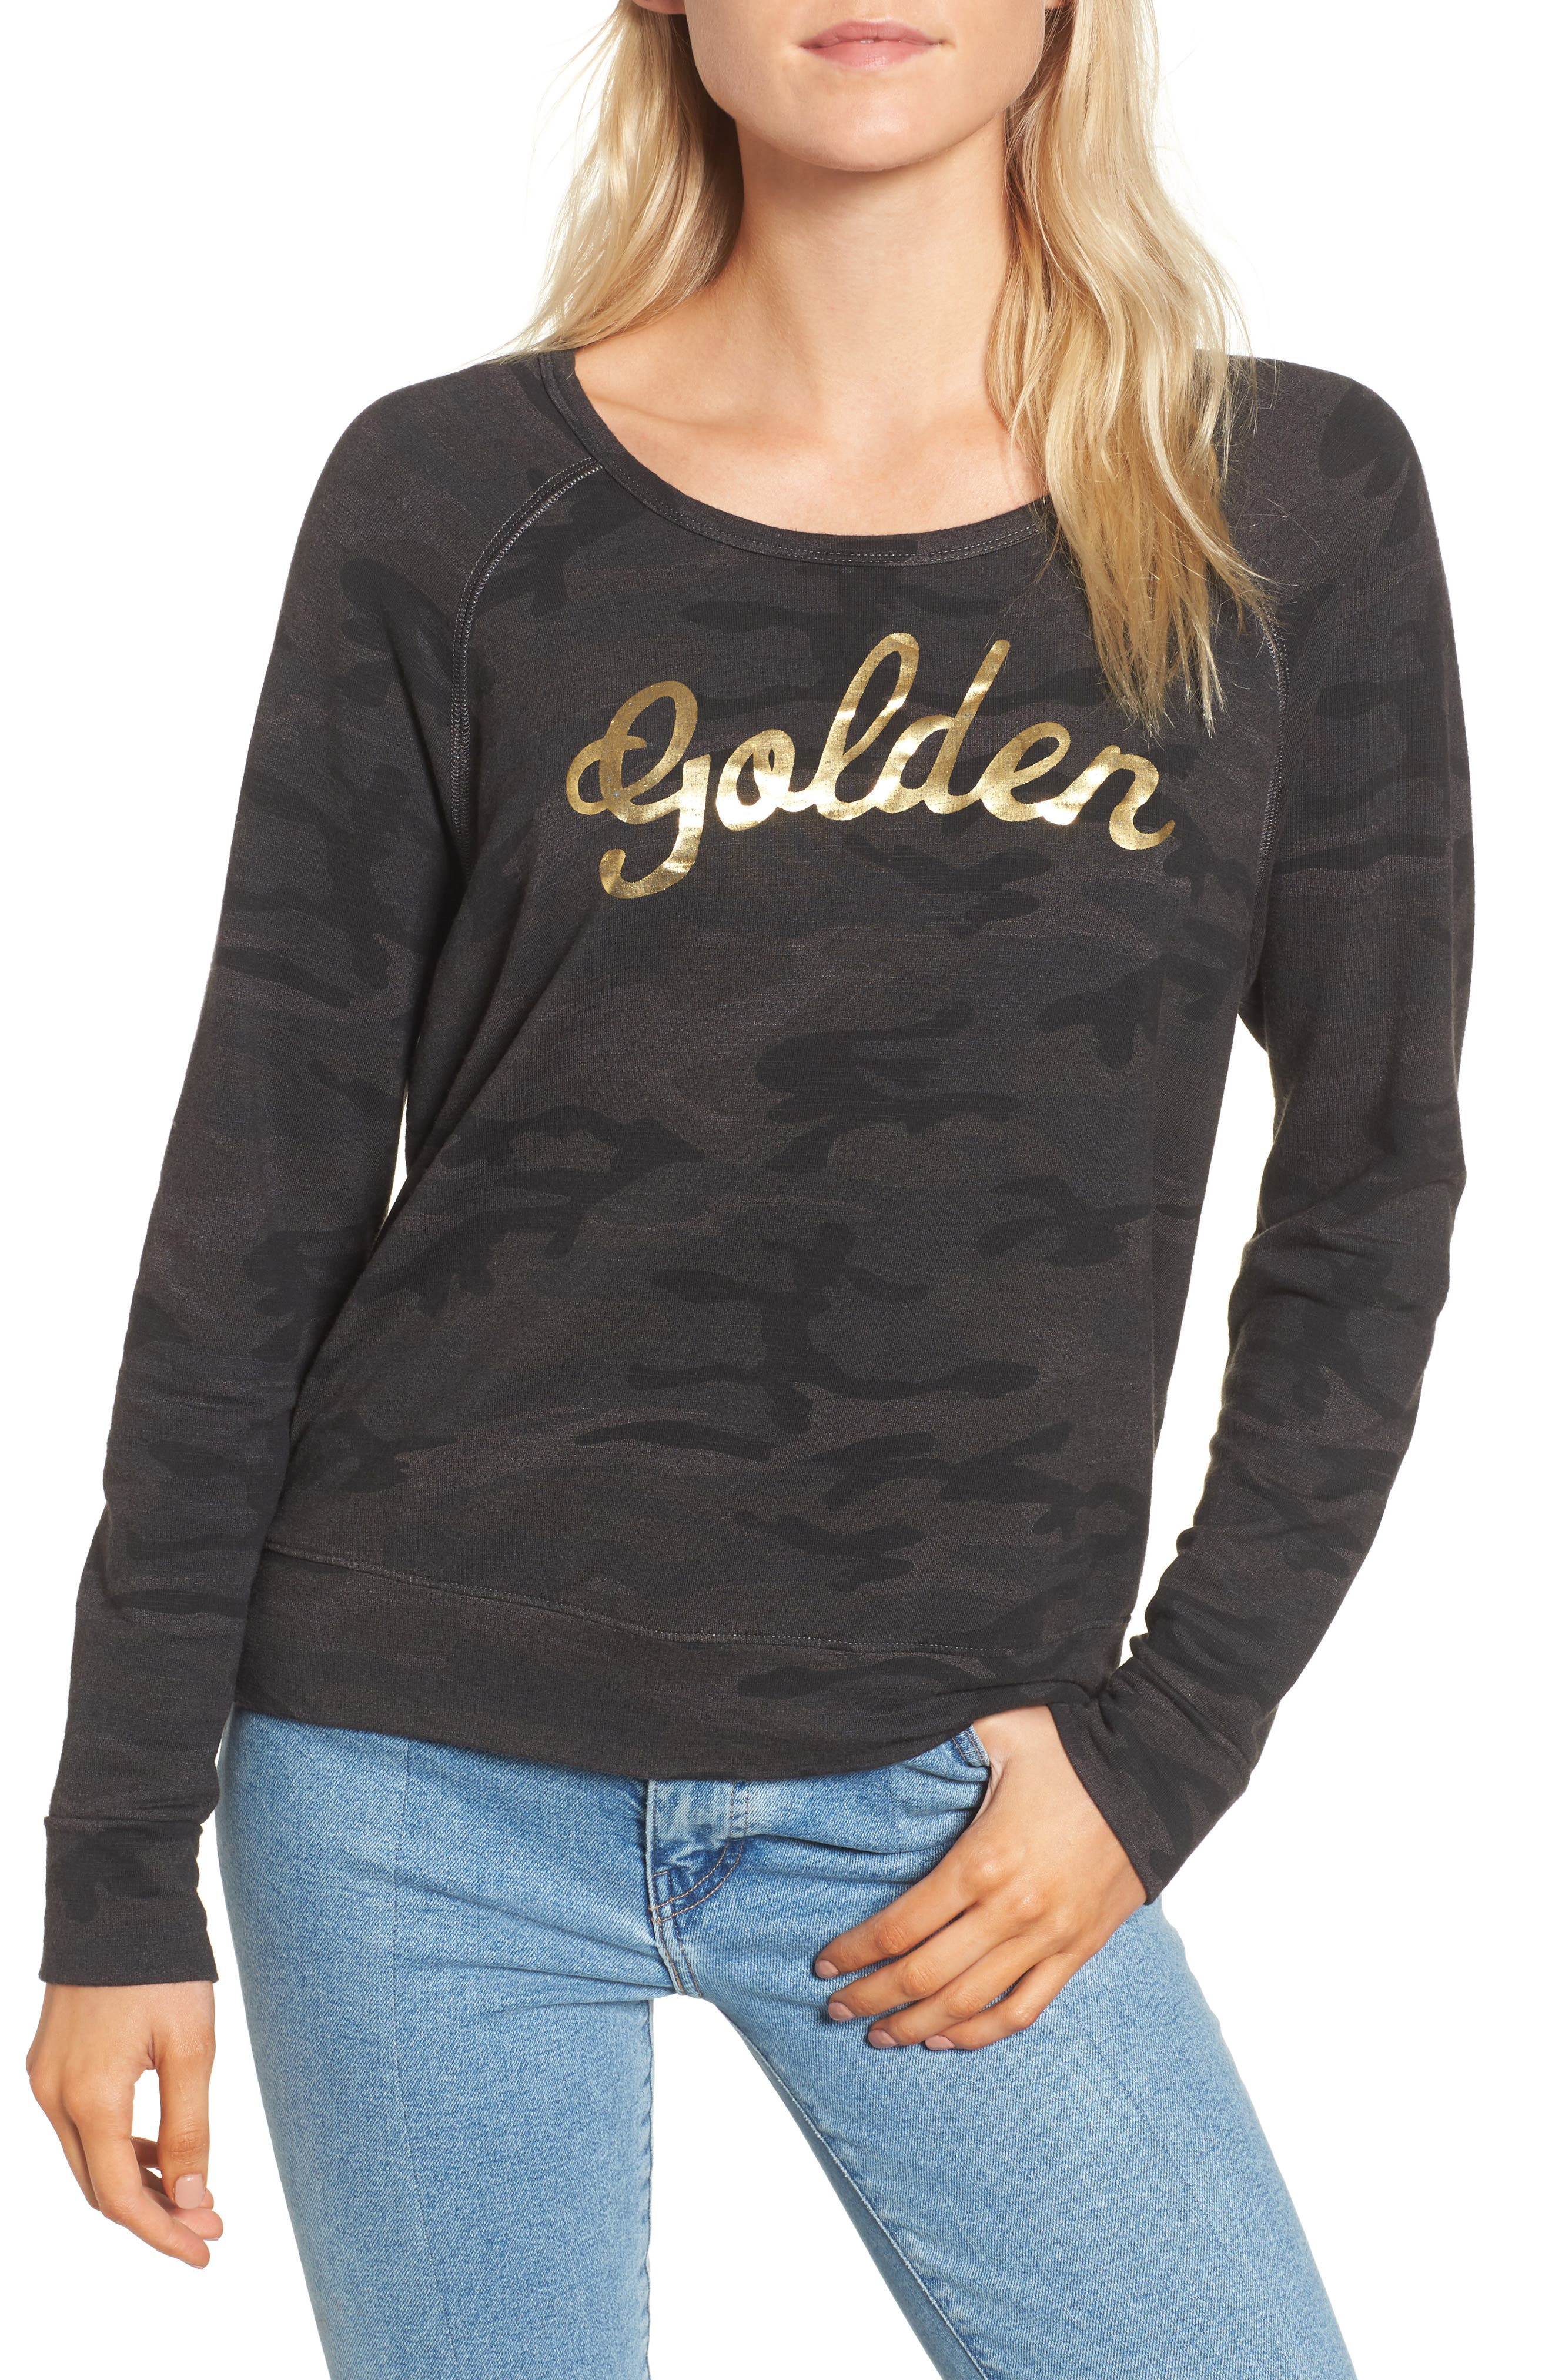 Active Golden Sweatshirt,                         Main,                         color,